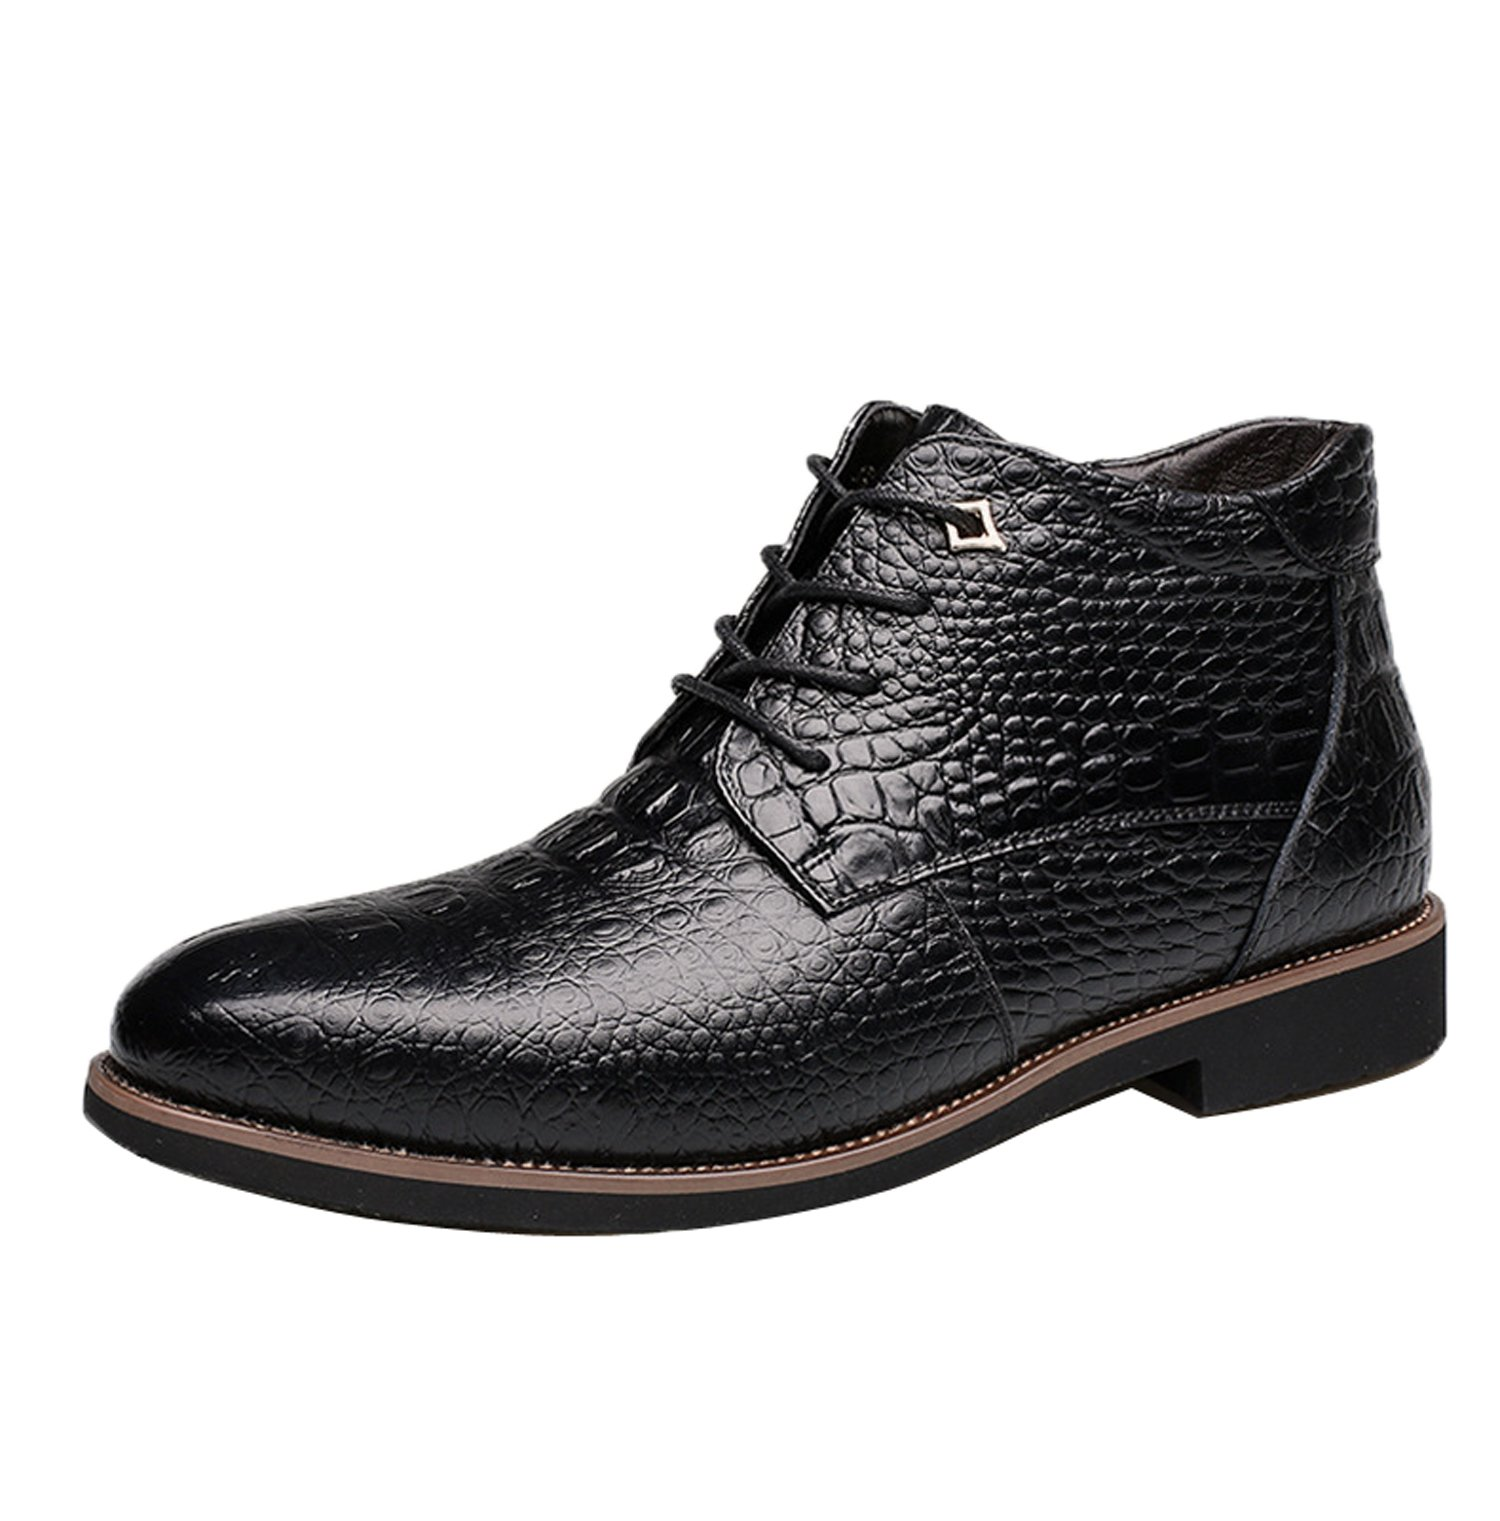 Gaorui Men Winter Warm Fur Lined Leather Snow Boot Alligator Business Dress Formal Shoe